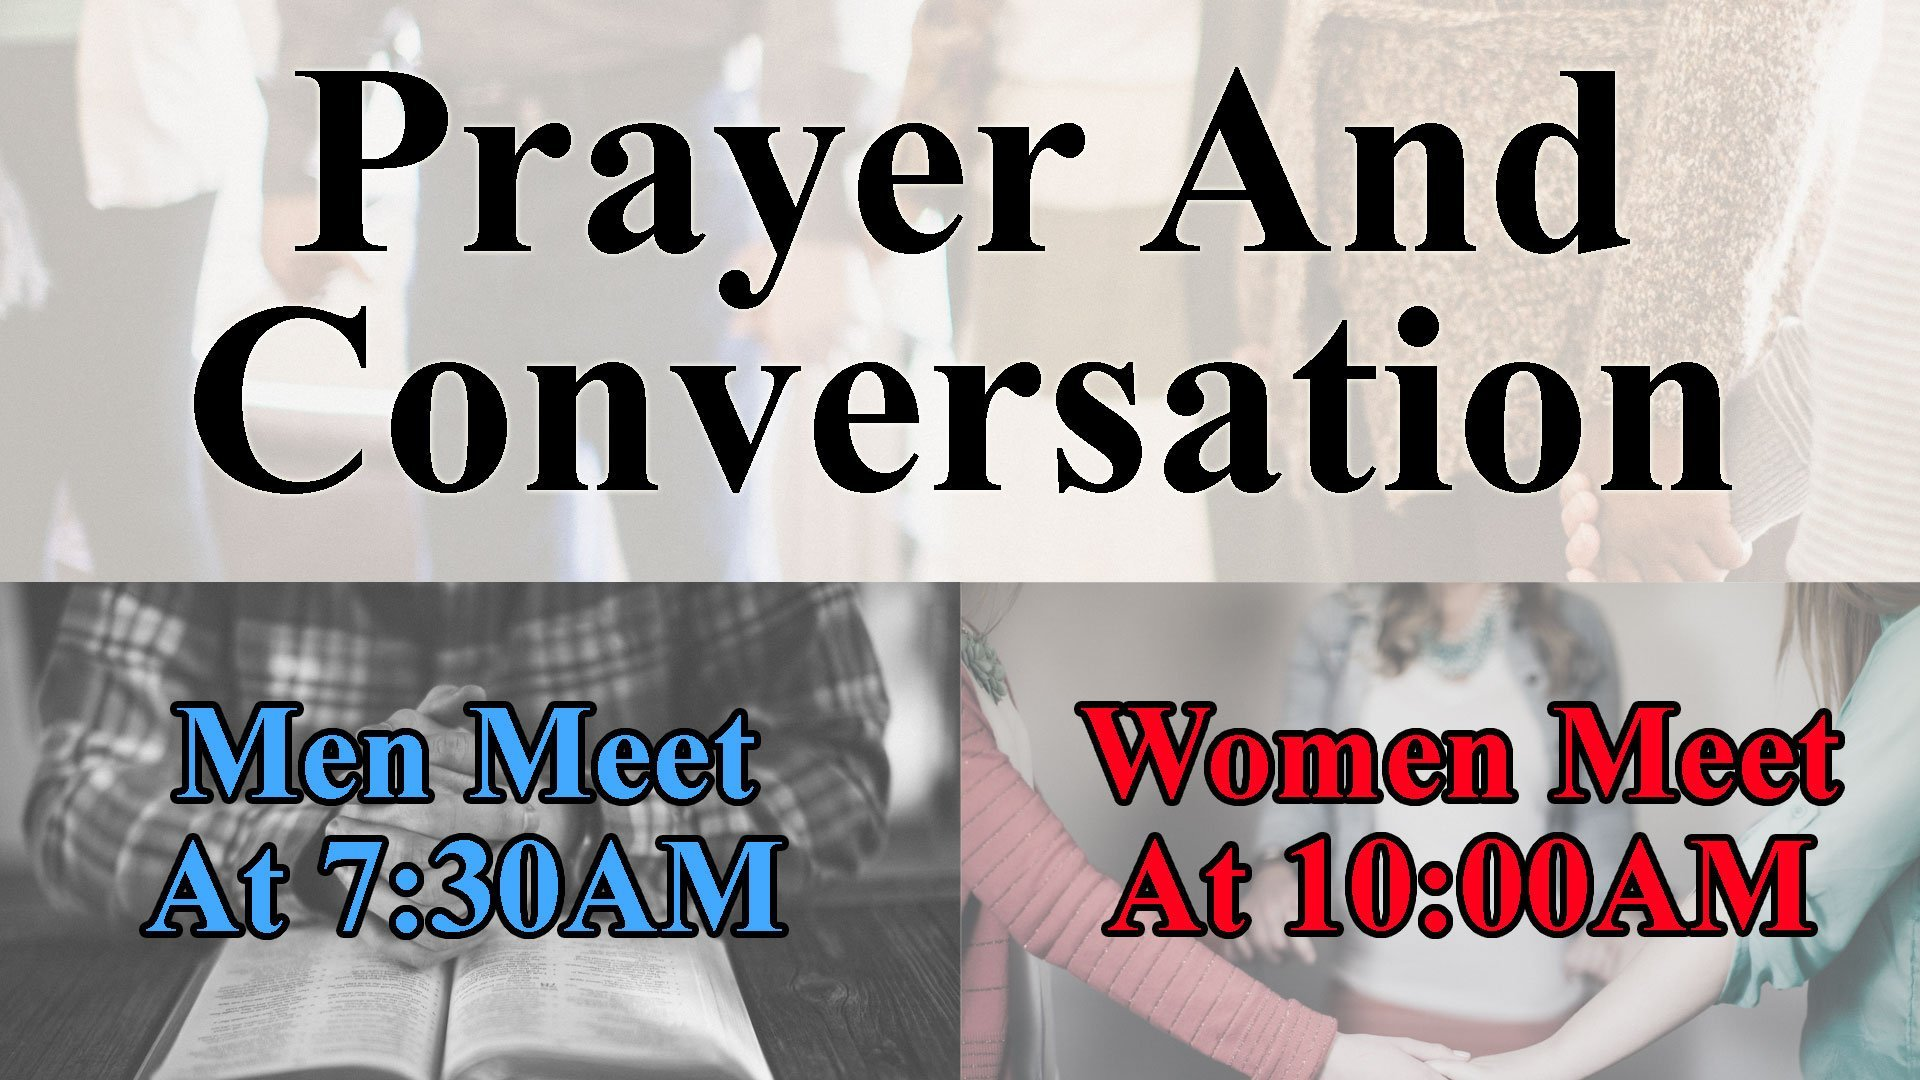 Men And Women's Prayer And Conversation